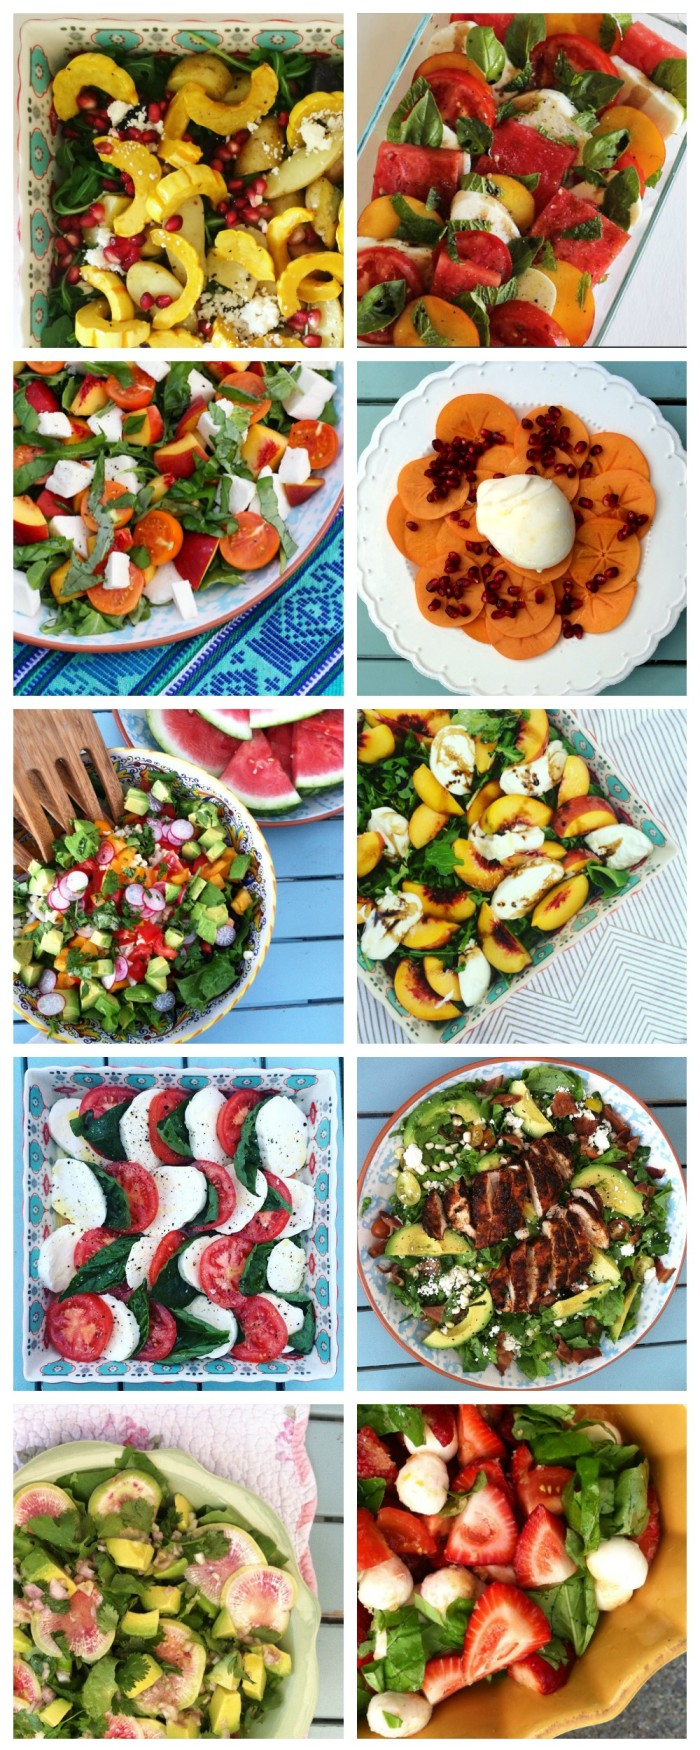 Top 10 Salad Recipes | Rainbow Delicious